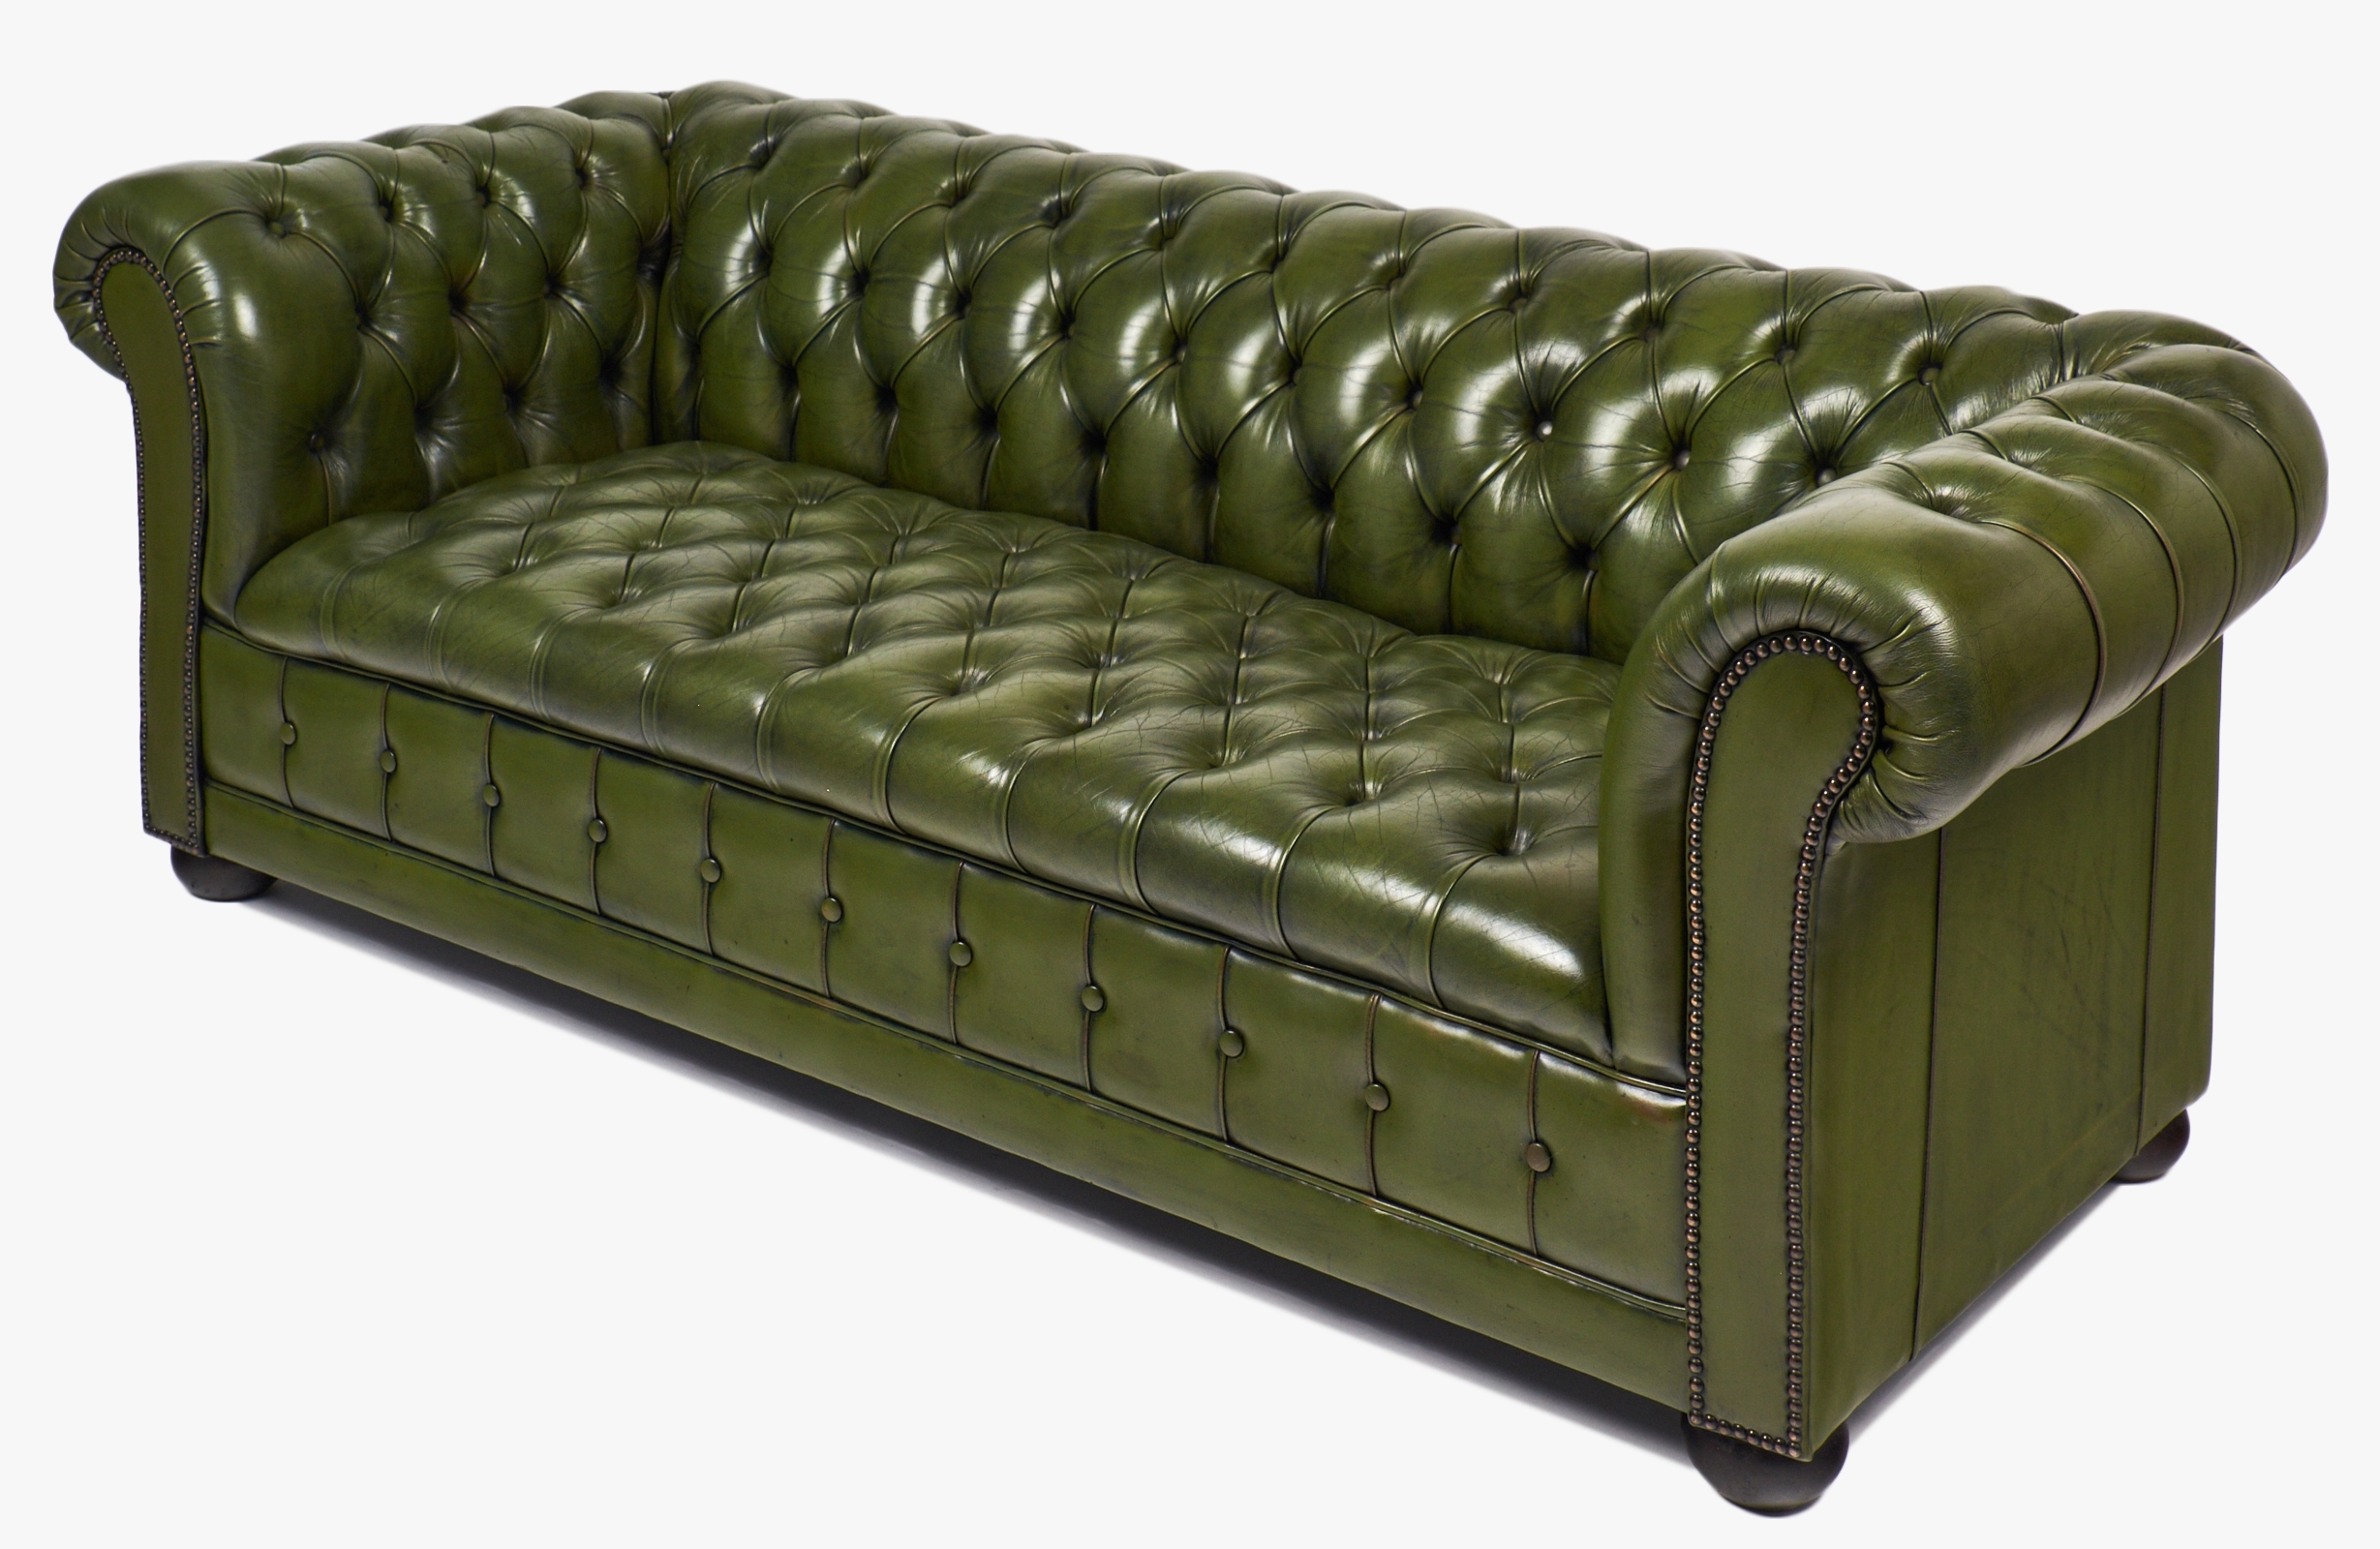 Vintage Chesterfield Sofas Throughout Most Recent Vintage Green Leather Chesterfield Sofa – Jean Marc Fray (Gallery 12 of 20)